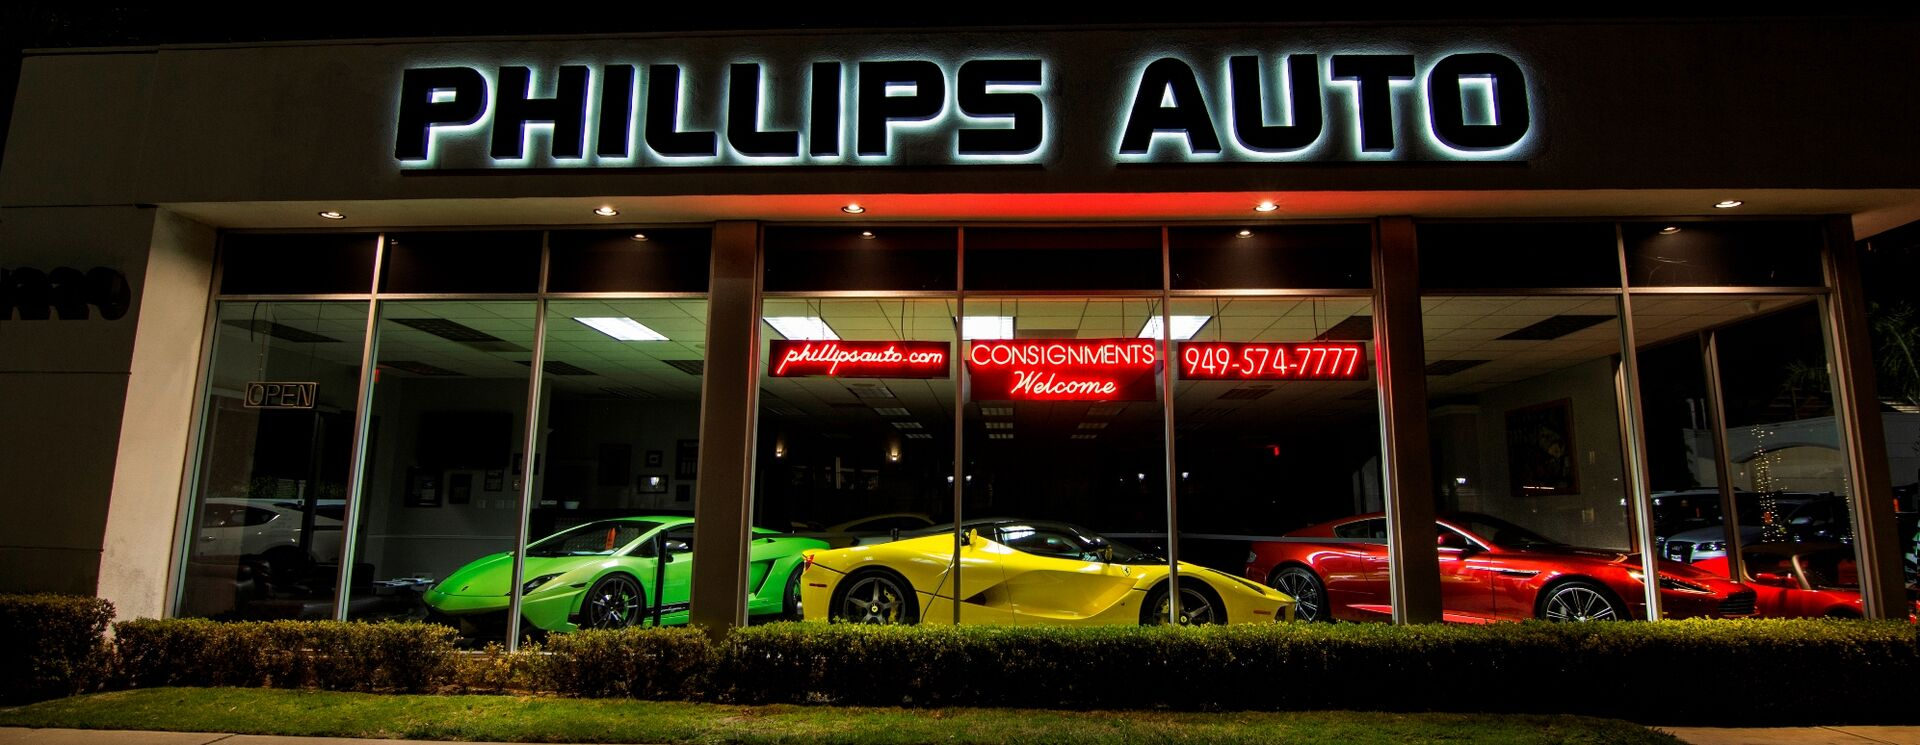 Used Car Dealerships Near La Puente